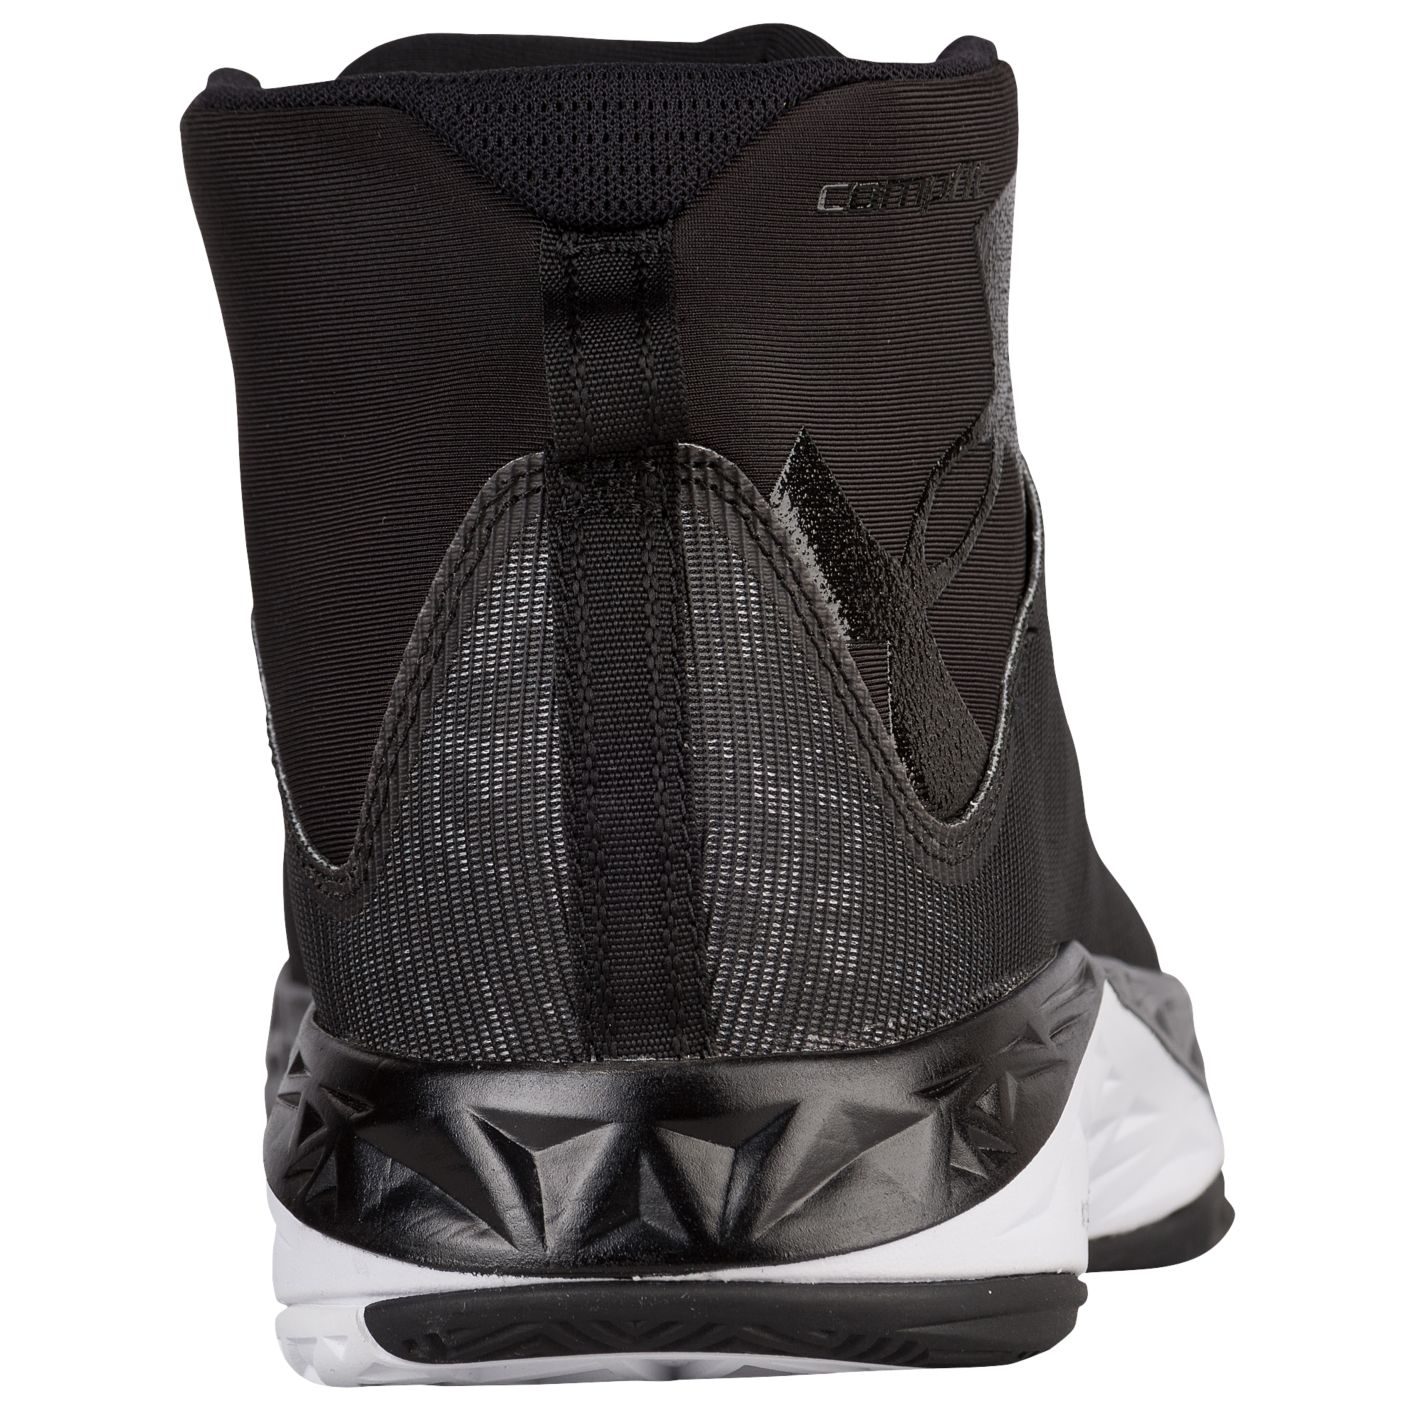 The Under Armour Fire Shot is Available Now 10